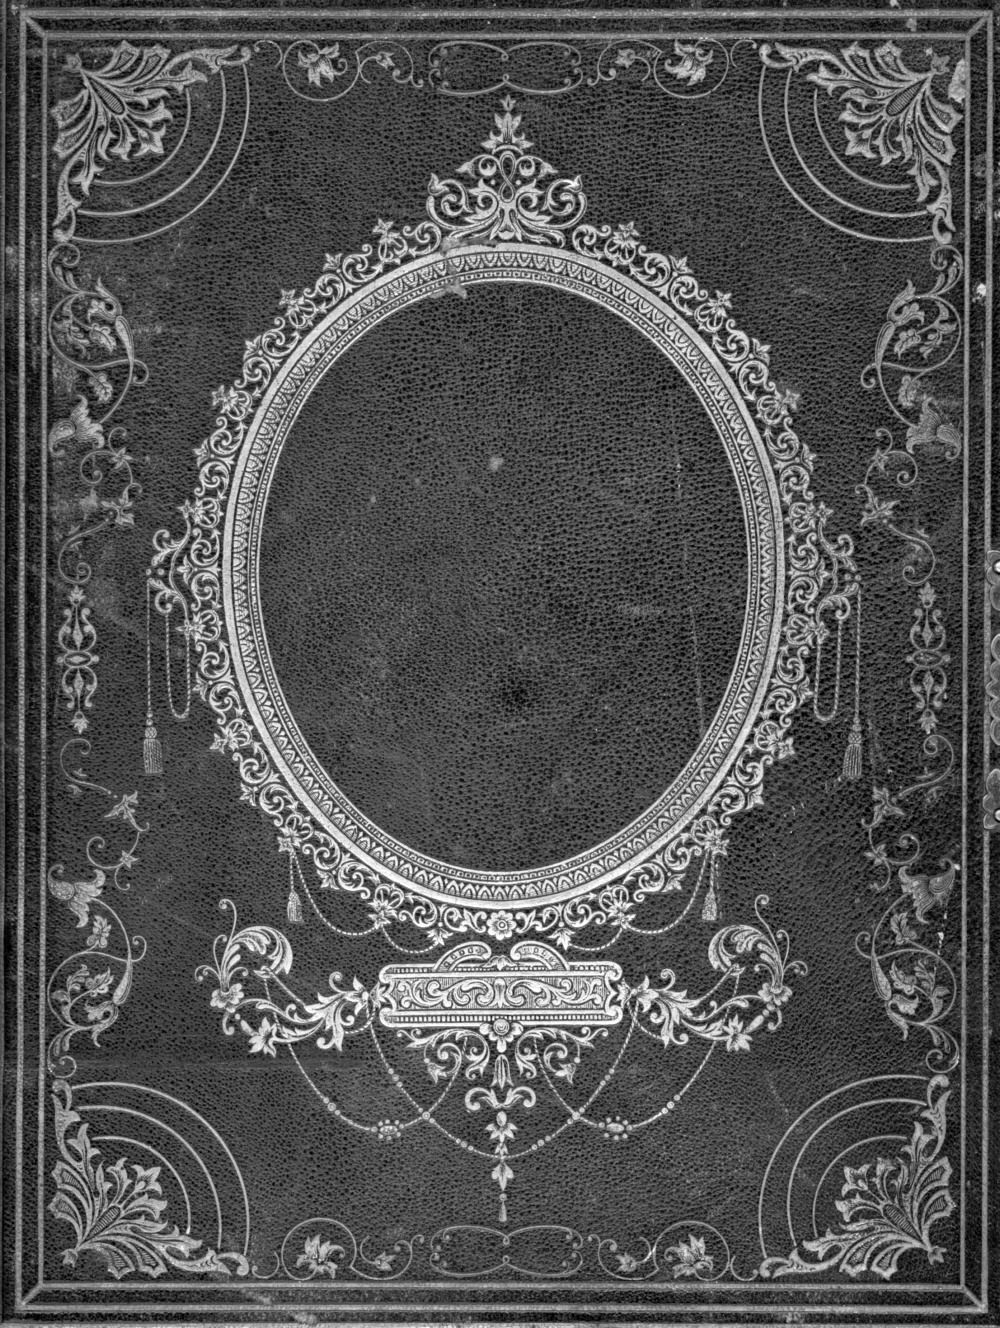 Old Book Cover Design ~ Old bible book cover design ideas pinterest